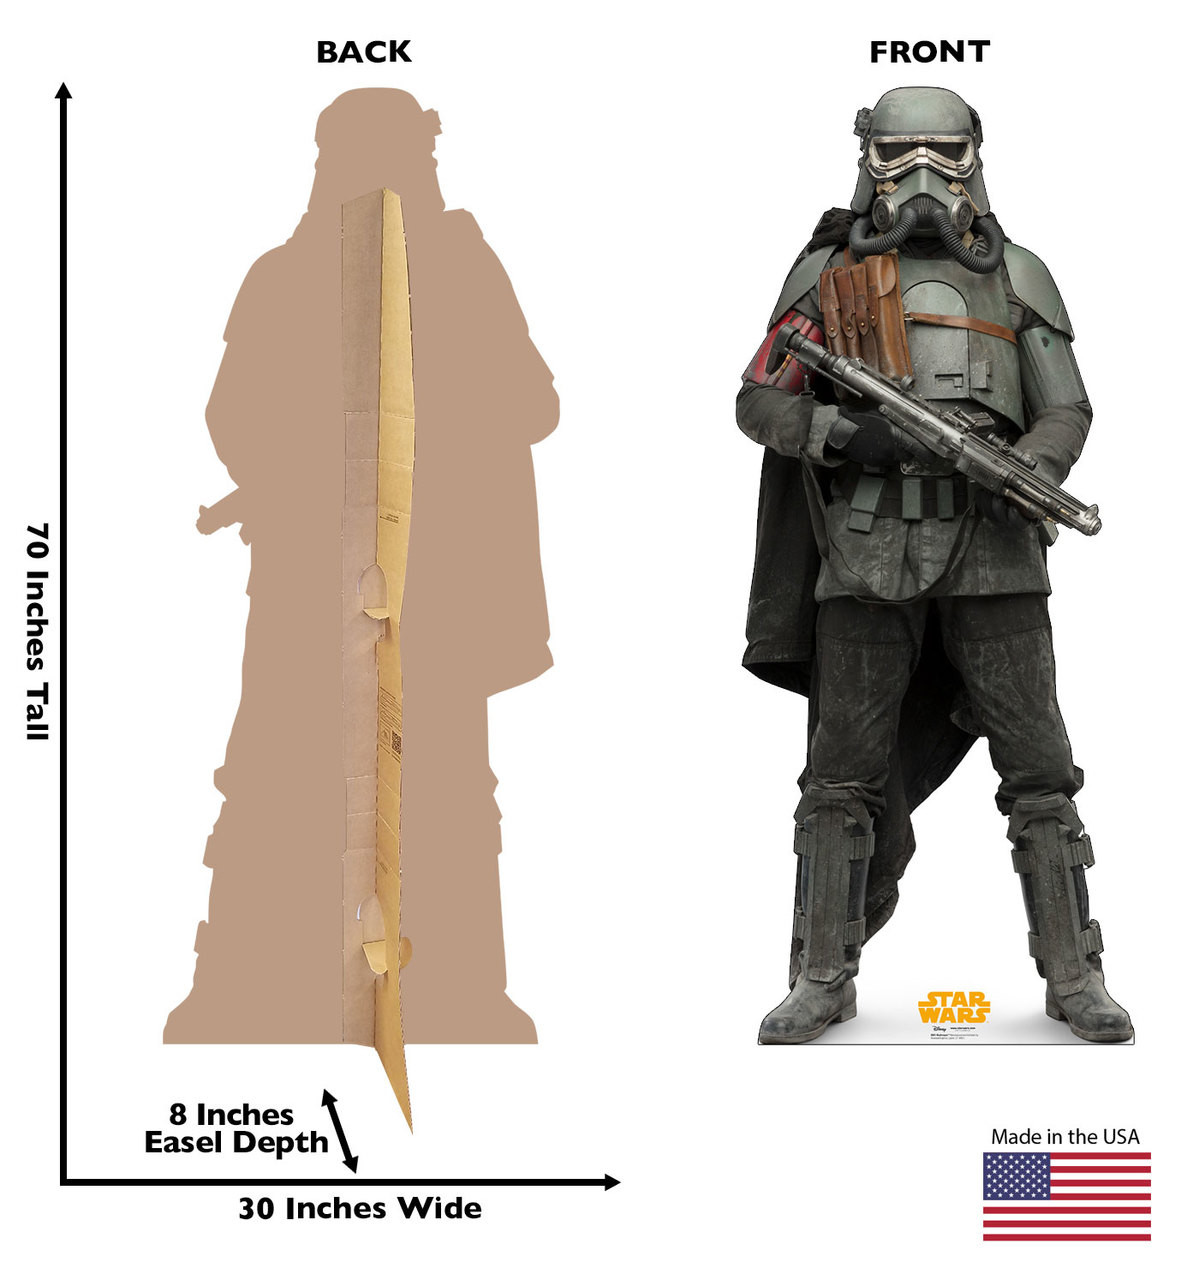 Mudtrooper™ Life-size cardboard standee back and front with dimensions.